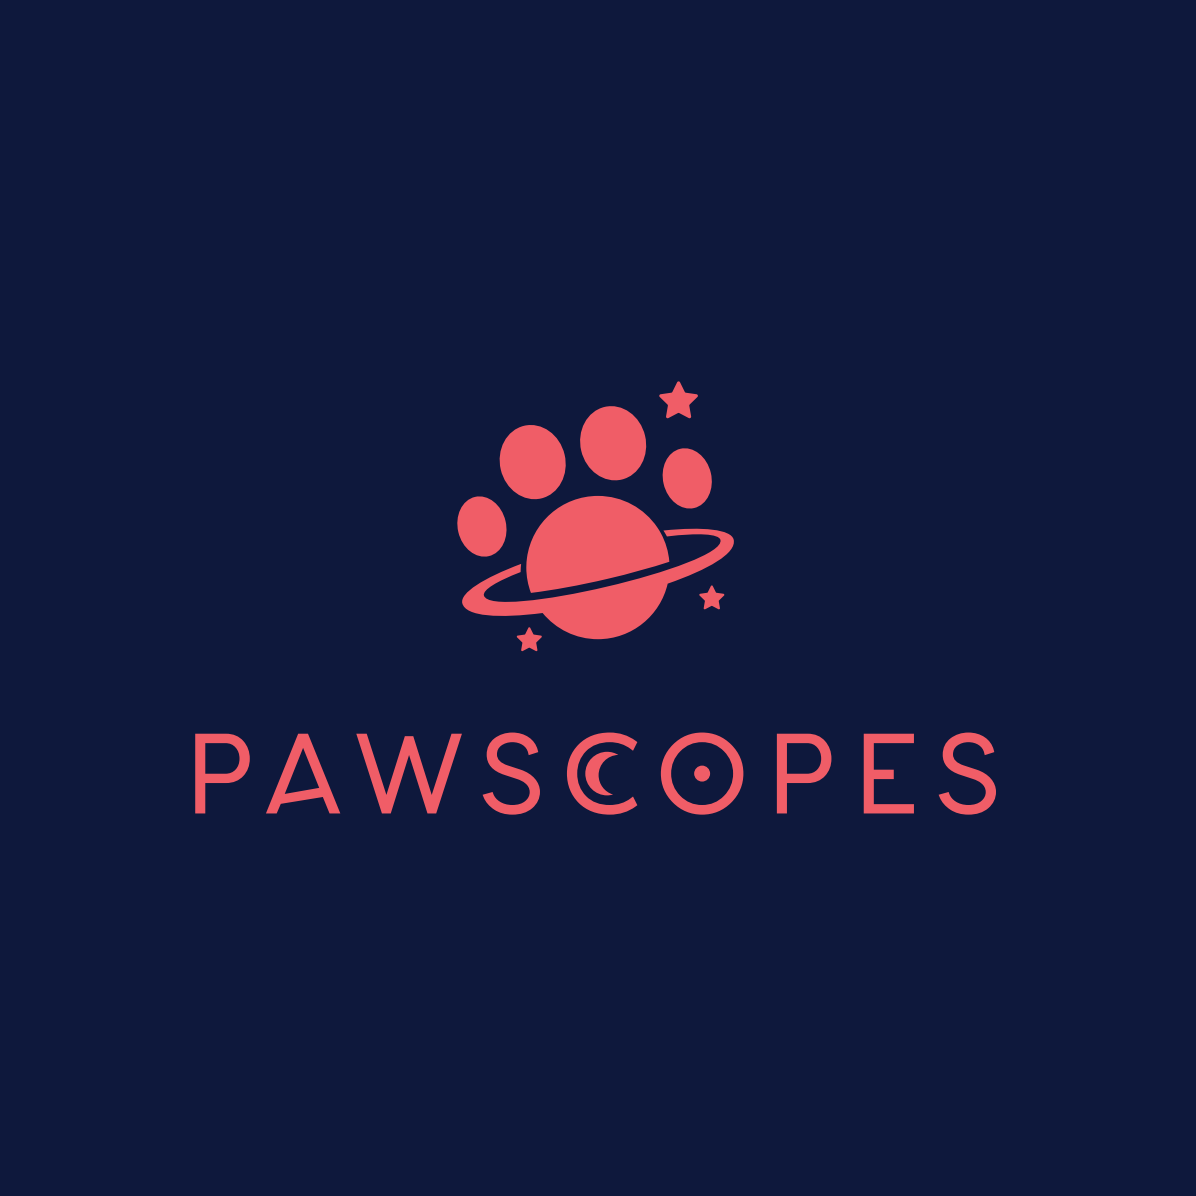 Pawscopes Business Cards